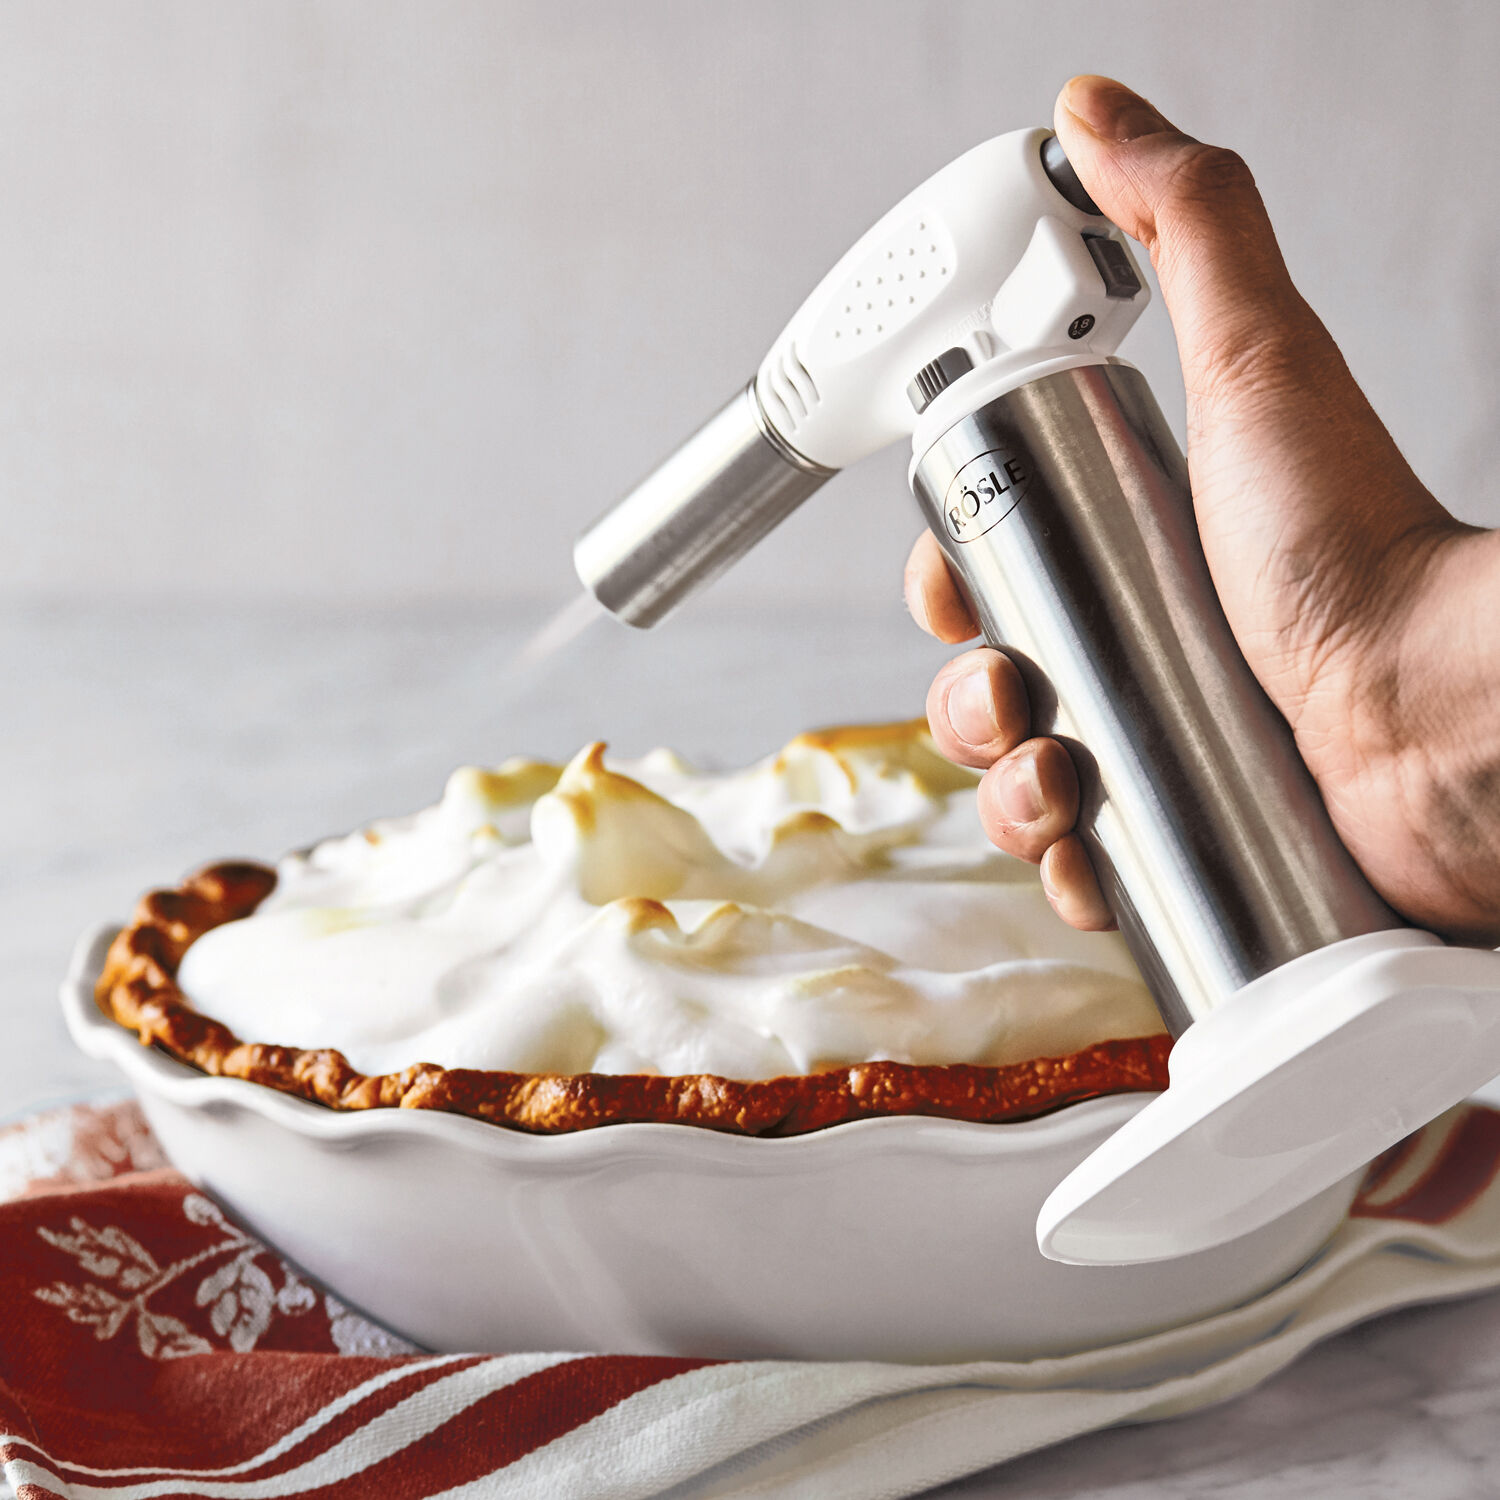 It to operate with butane or propane gas;. Rösle Kitchen Torch   Sur La Table